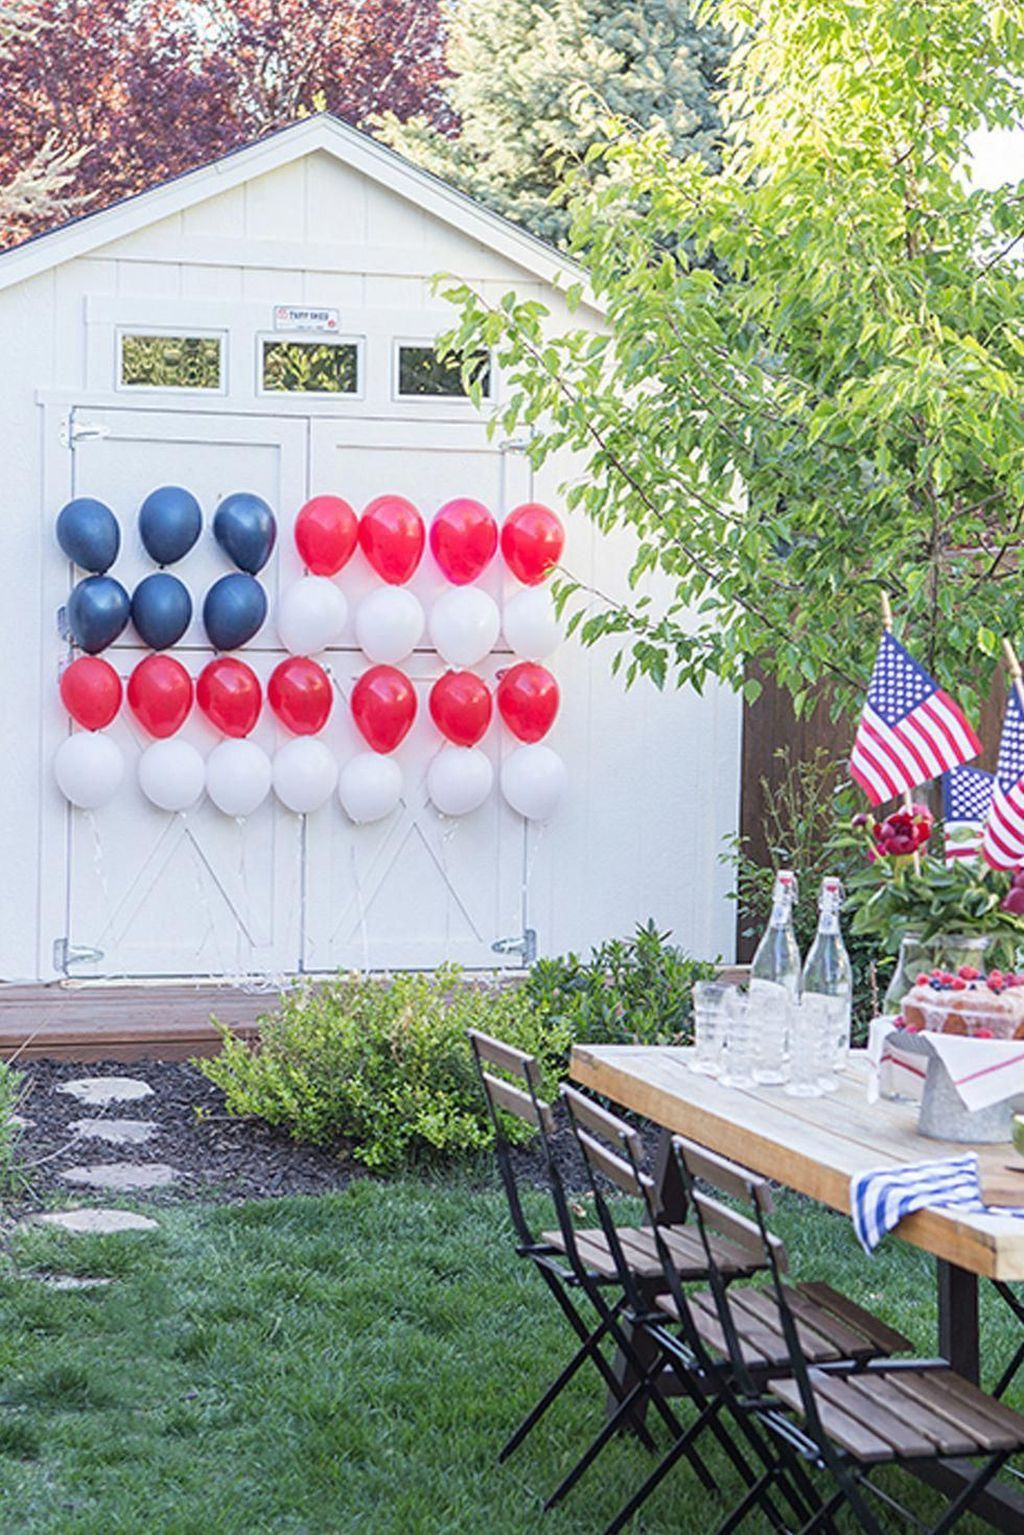 30 Easy Outdoor Decoration Ideas For Independence Day Trenduhome July Crafts 4th Of July Decorations 4th Of July Party